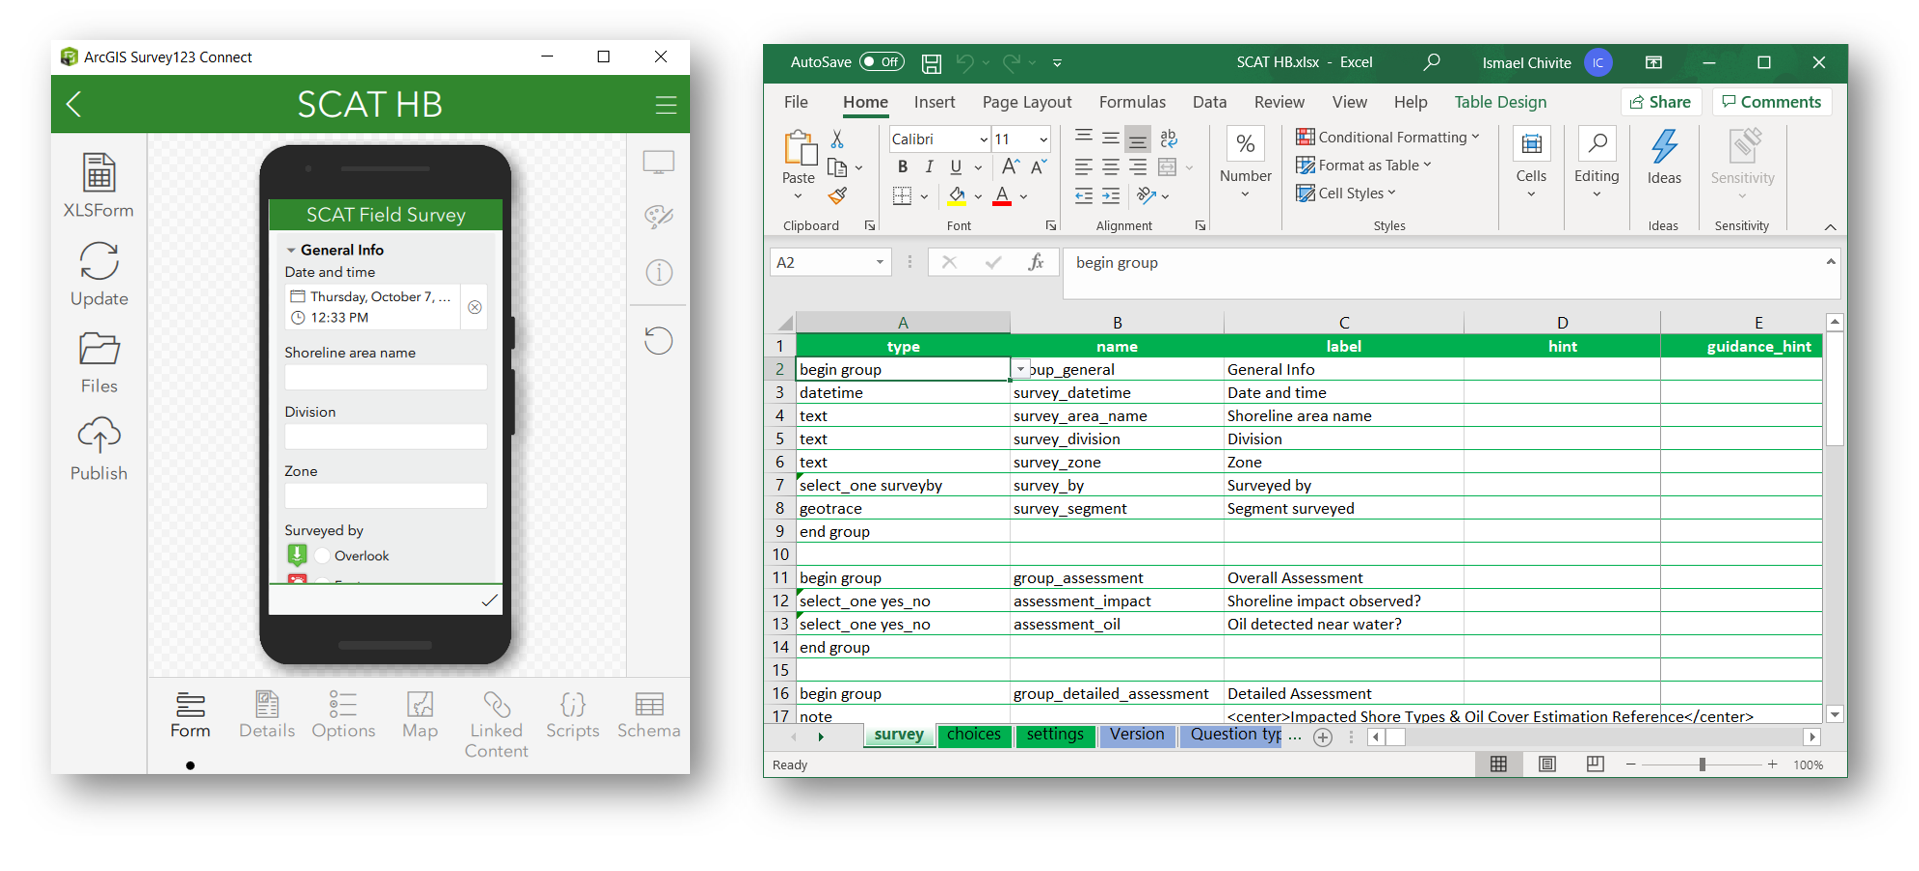 Image showing Survey123 Connect, the SCAT preview and its corresponding XLSForm spreadsheet